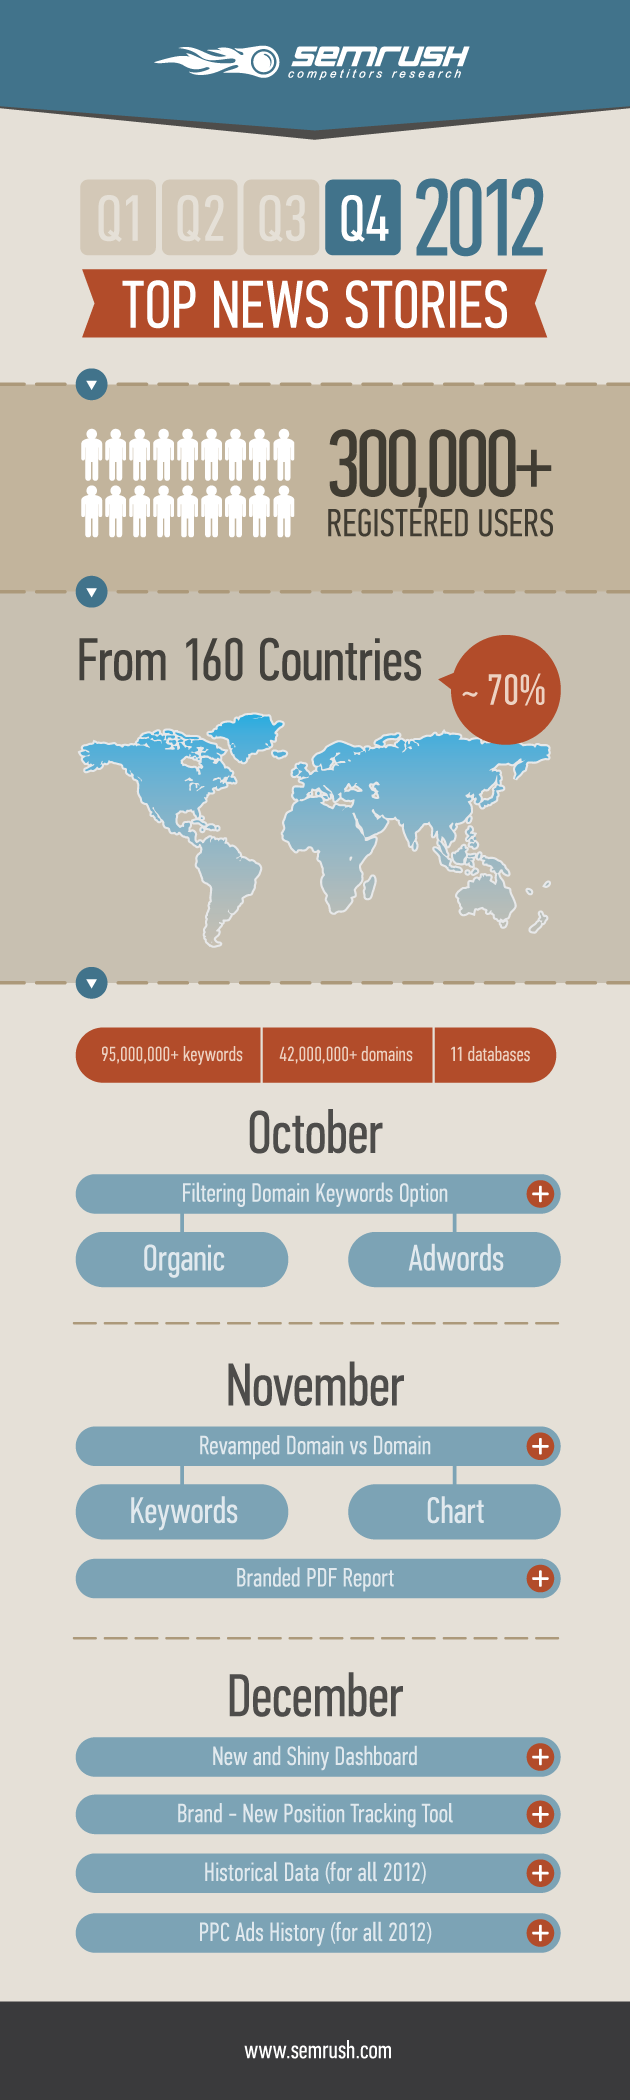 Q4 2012 SEMrush Top News Stories